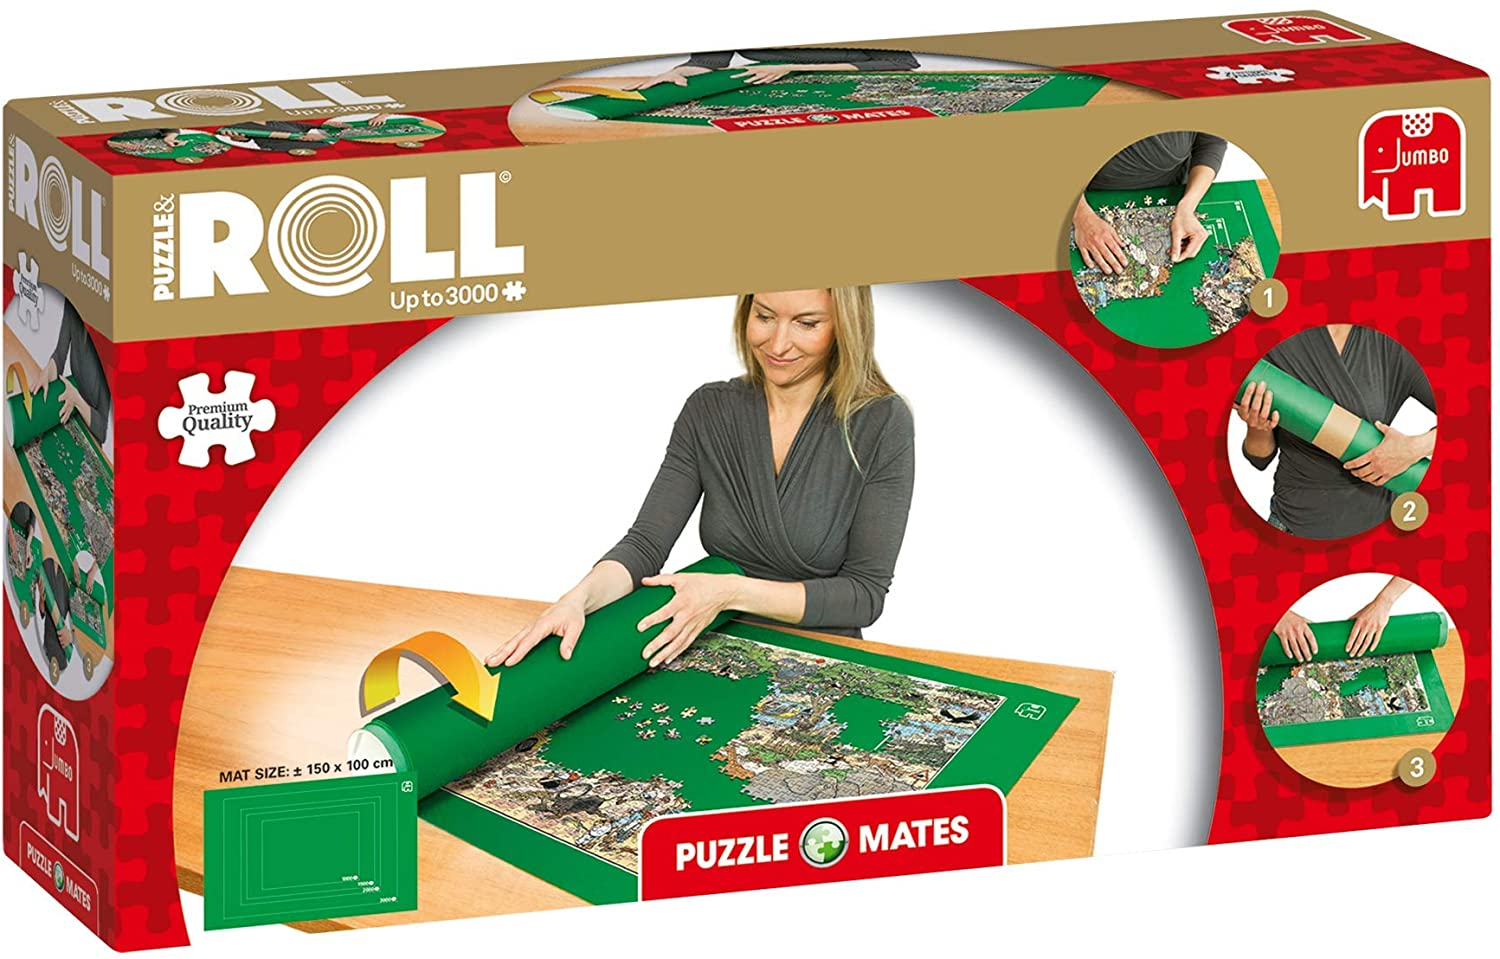 Puzzle Mates 17691 Puzzle and Roll Jigroll for up to 3000 Pieces